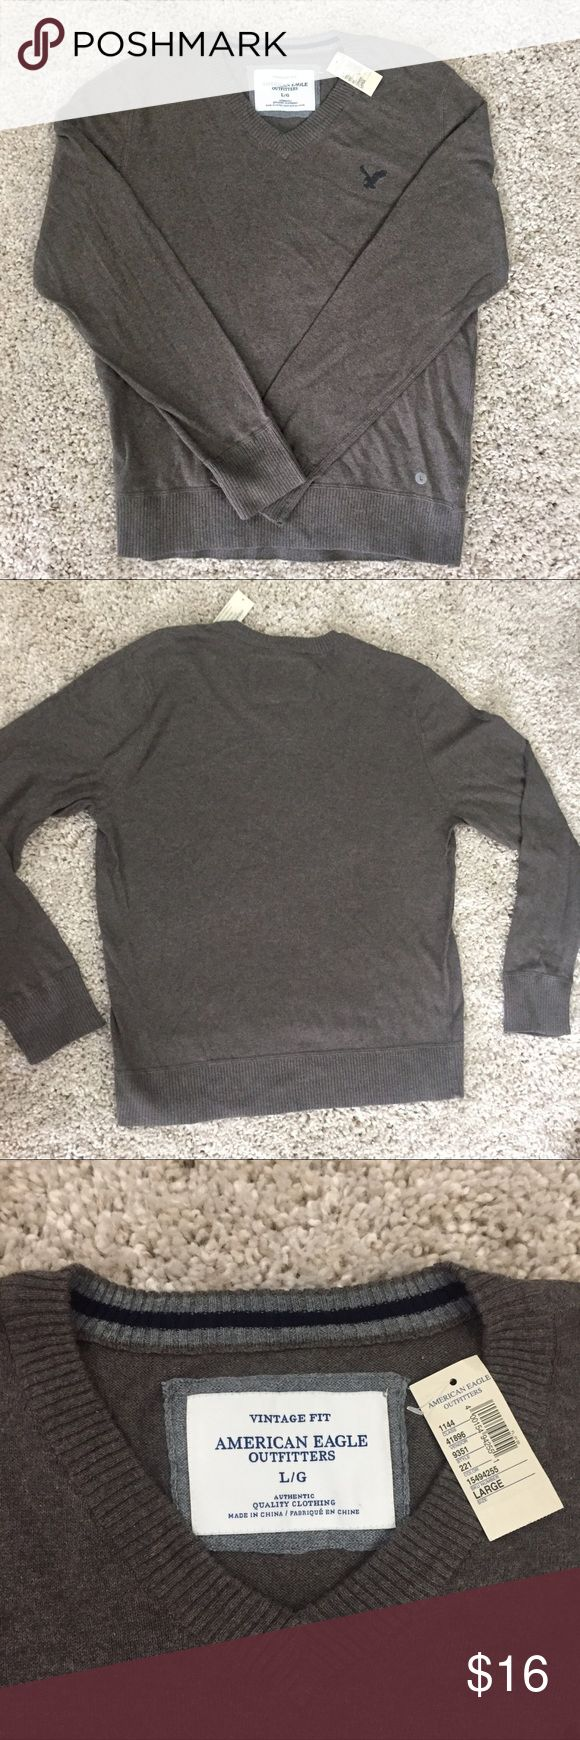 NWT Grey/brown Men's V neck Sweater NWT American Eagle grey/brown vneck sweater American Eagle Outfitters Sweaters V-Neck